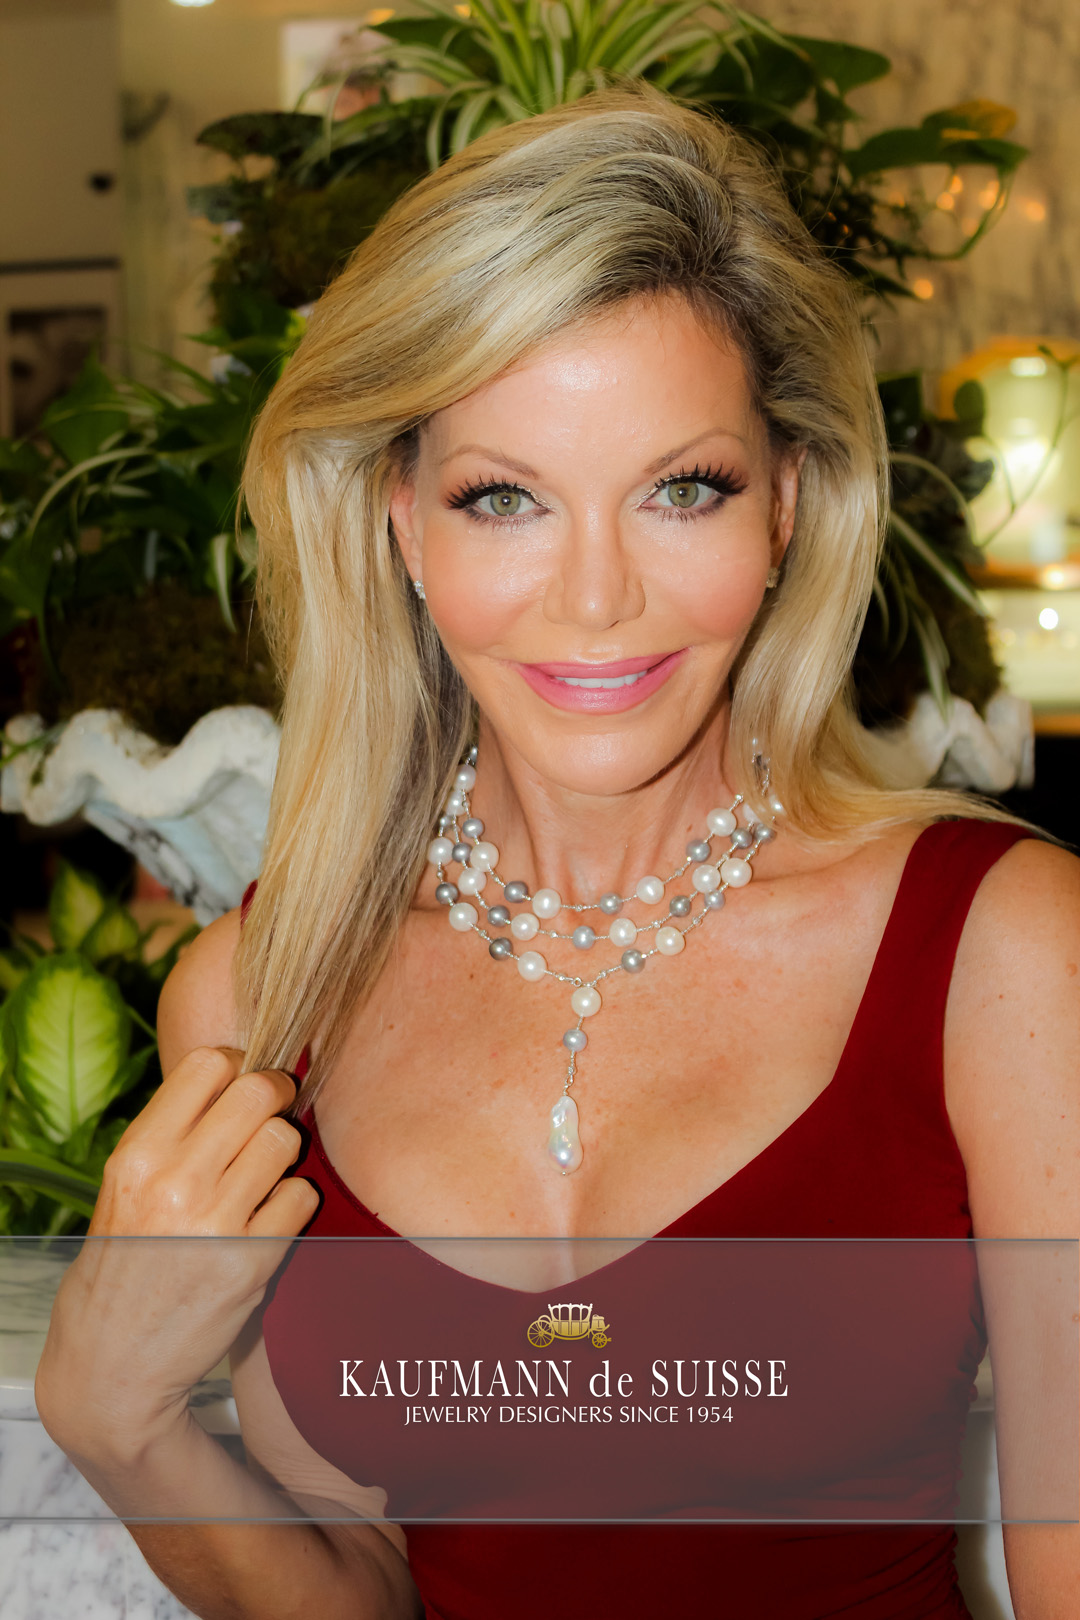 The Palm Beach Lariat Necklace in Grey and White Pearls